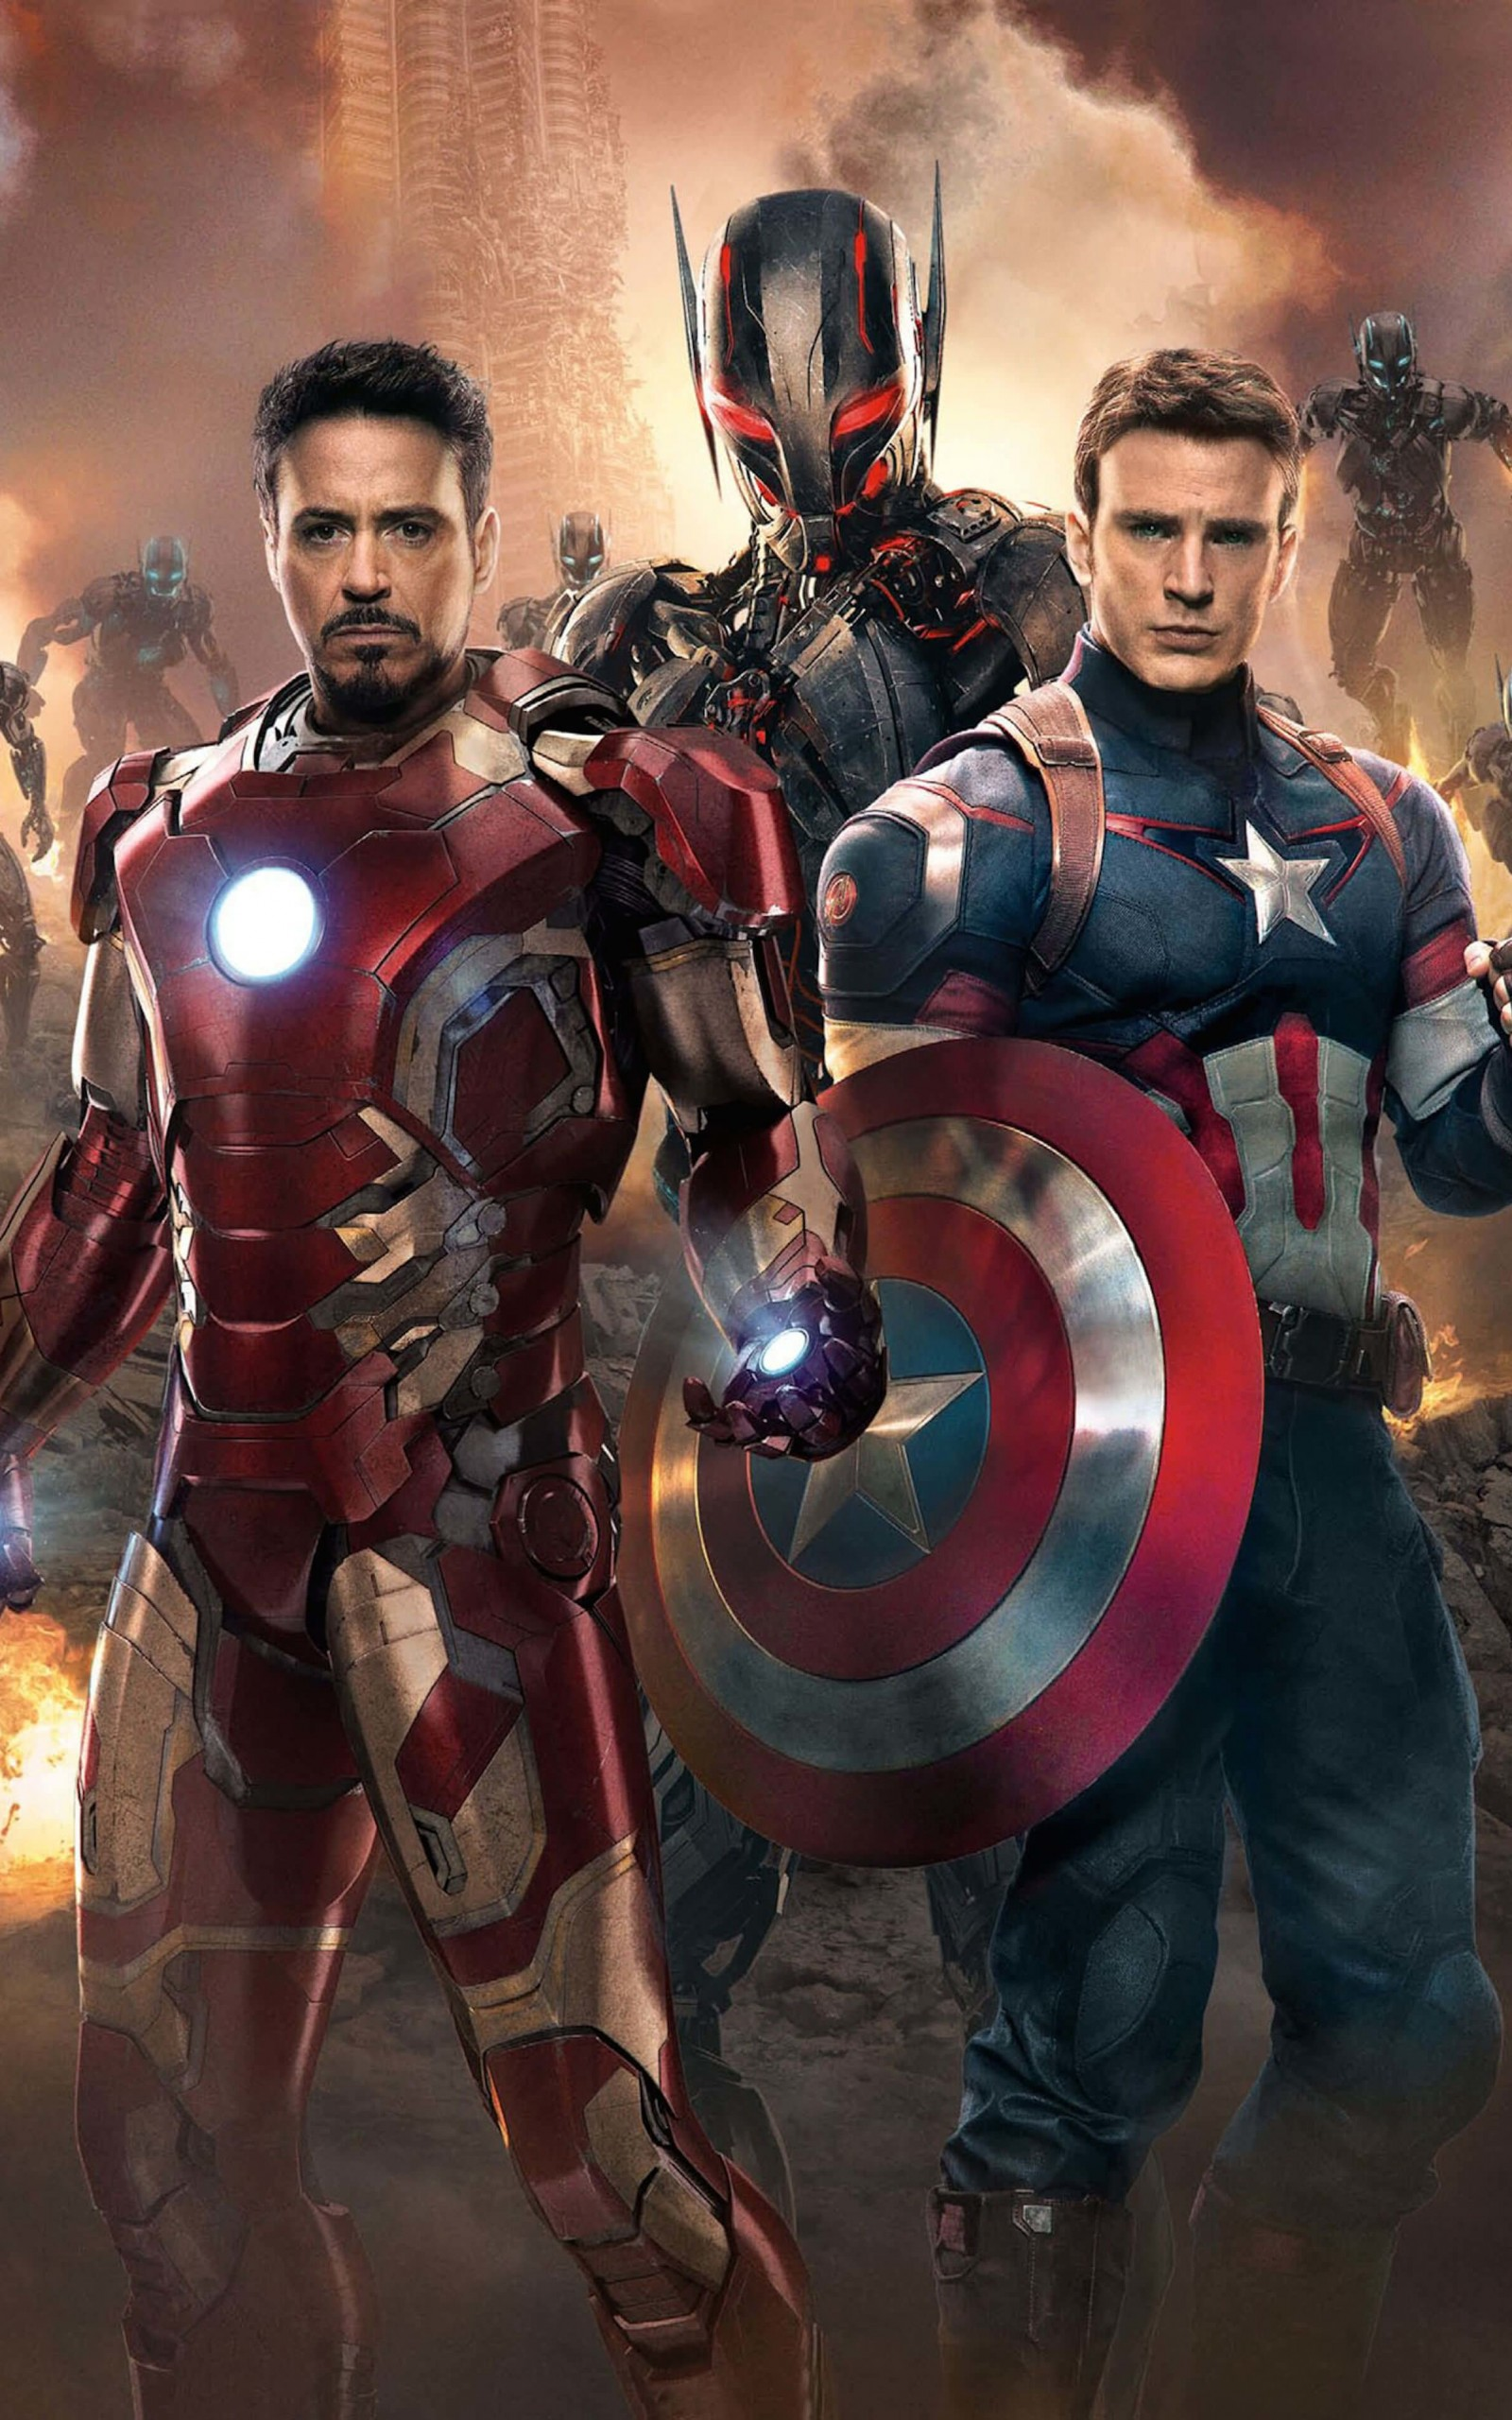 The Avengers: Age of Ultron - Iron Man and Captain America Wallpaper for Amazon Kindle Fire HDX 8.9